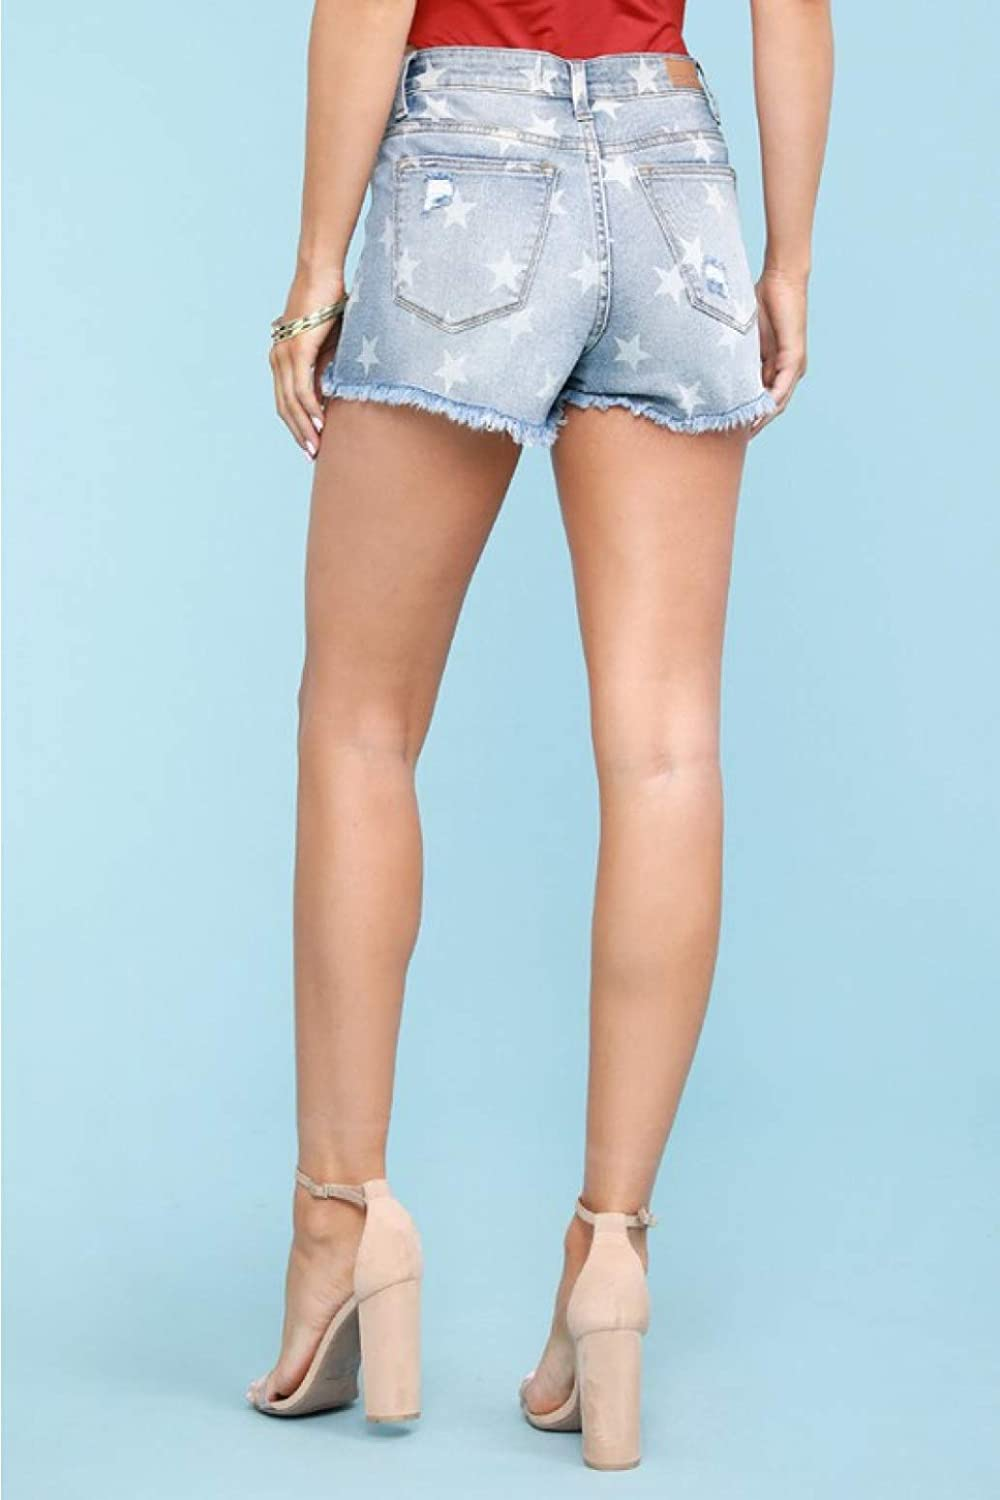 Style: 1581 Judy Blue Star Print Distressed Cut-Off Shorts